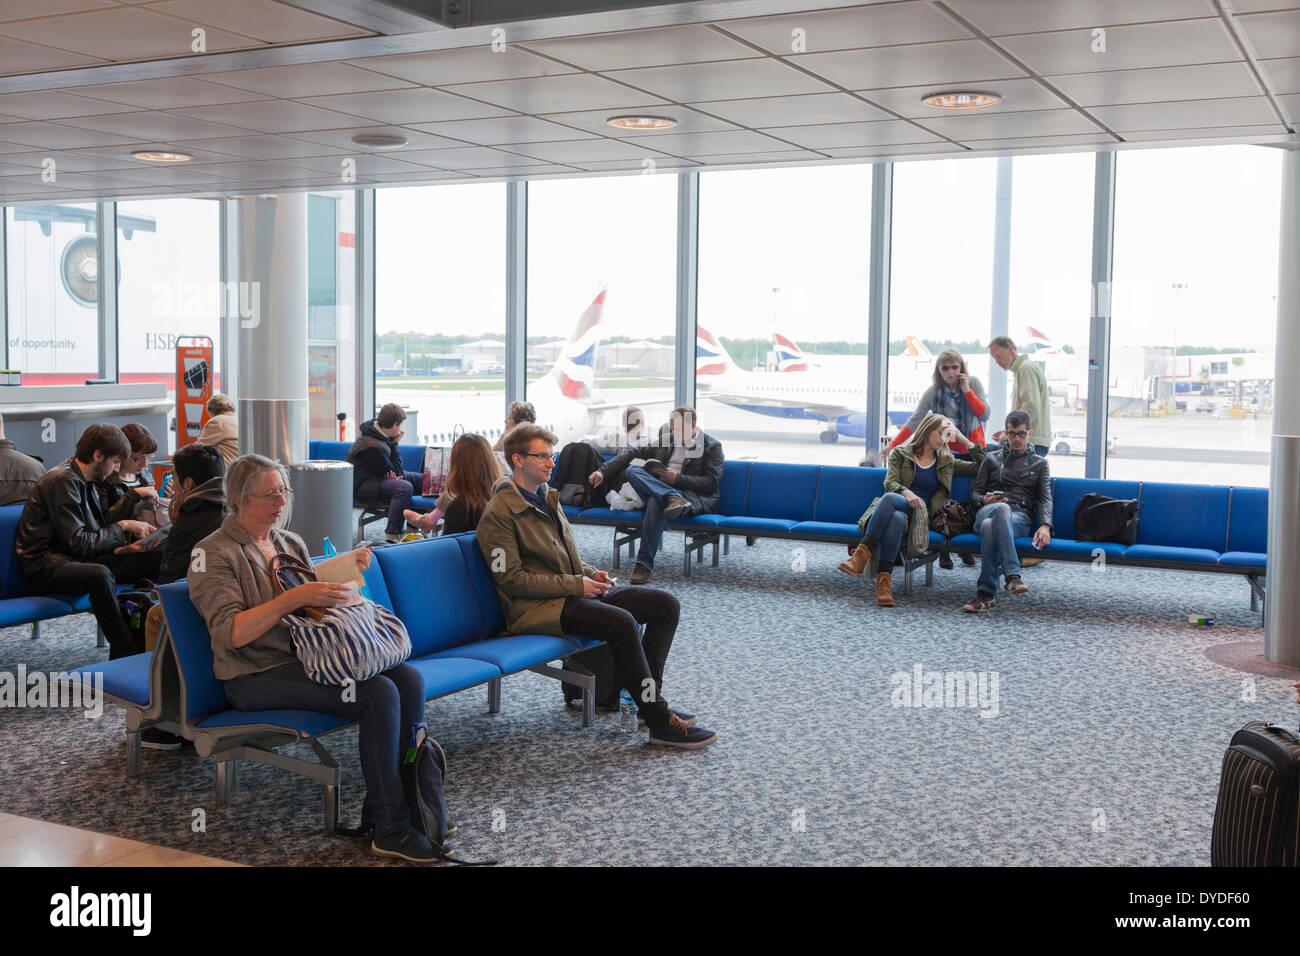 Passengers waiting in airport departure lounge at Gatwick Airport. - Stock Image